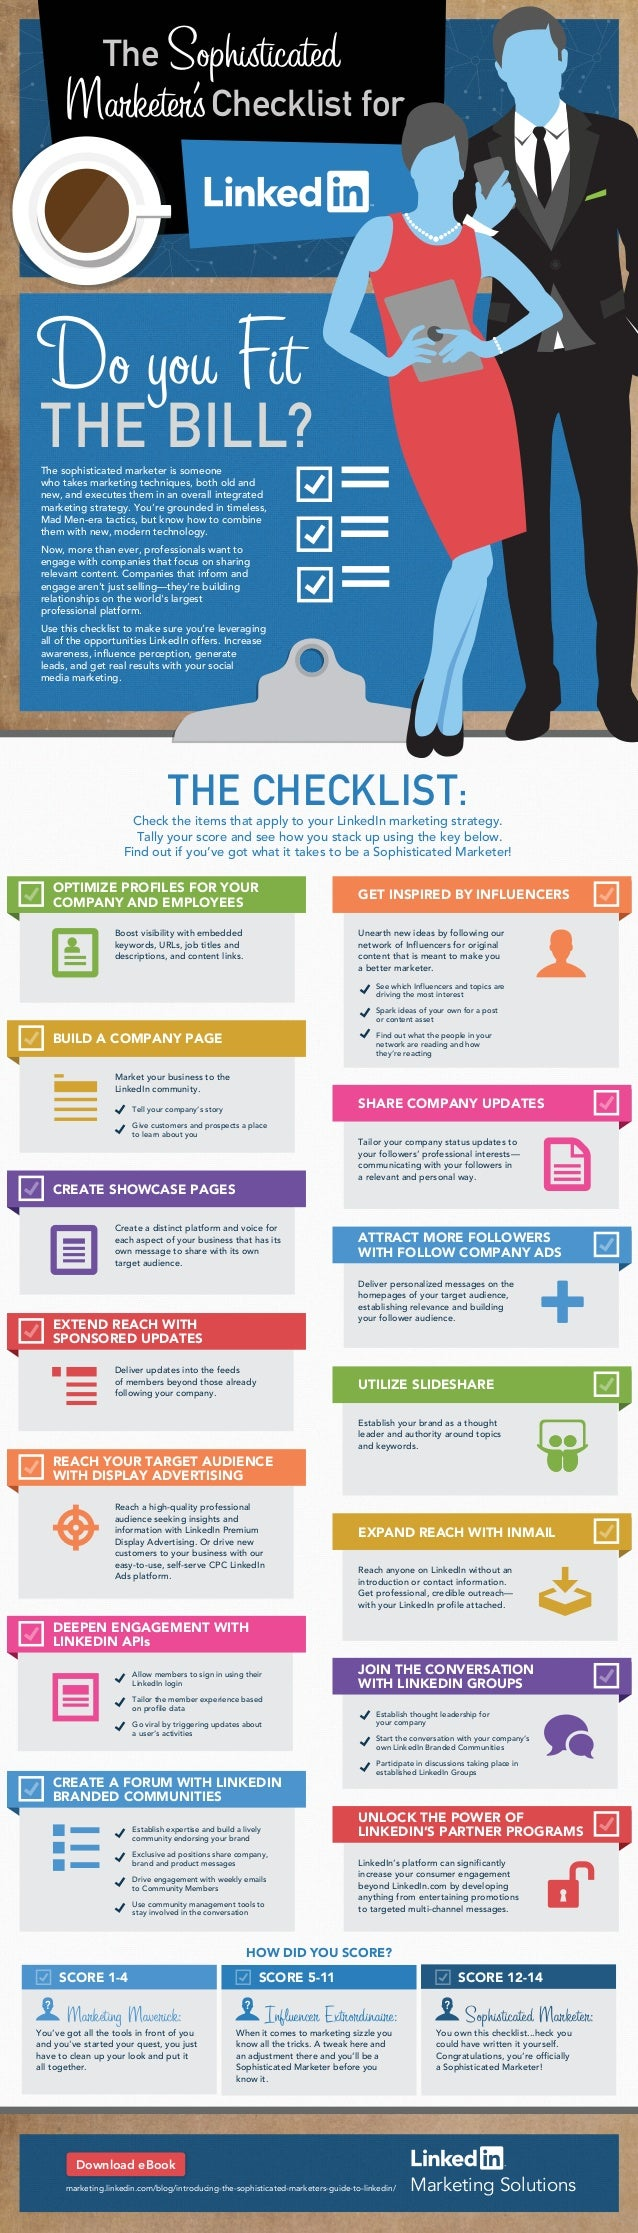 the sophisticated marketer's checklist for linkedin [infographic]